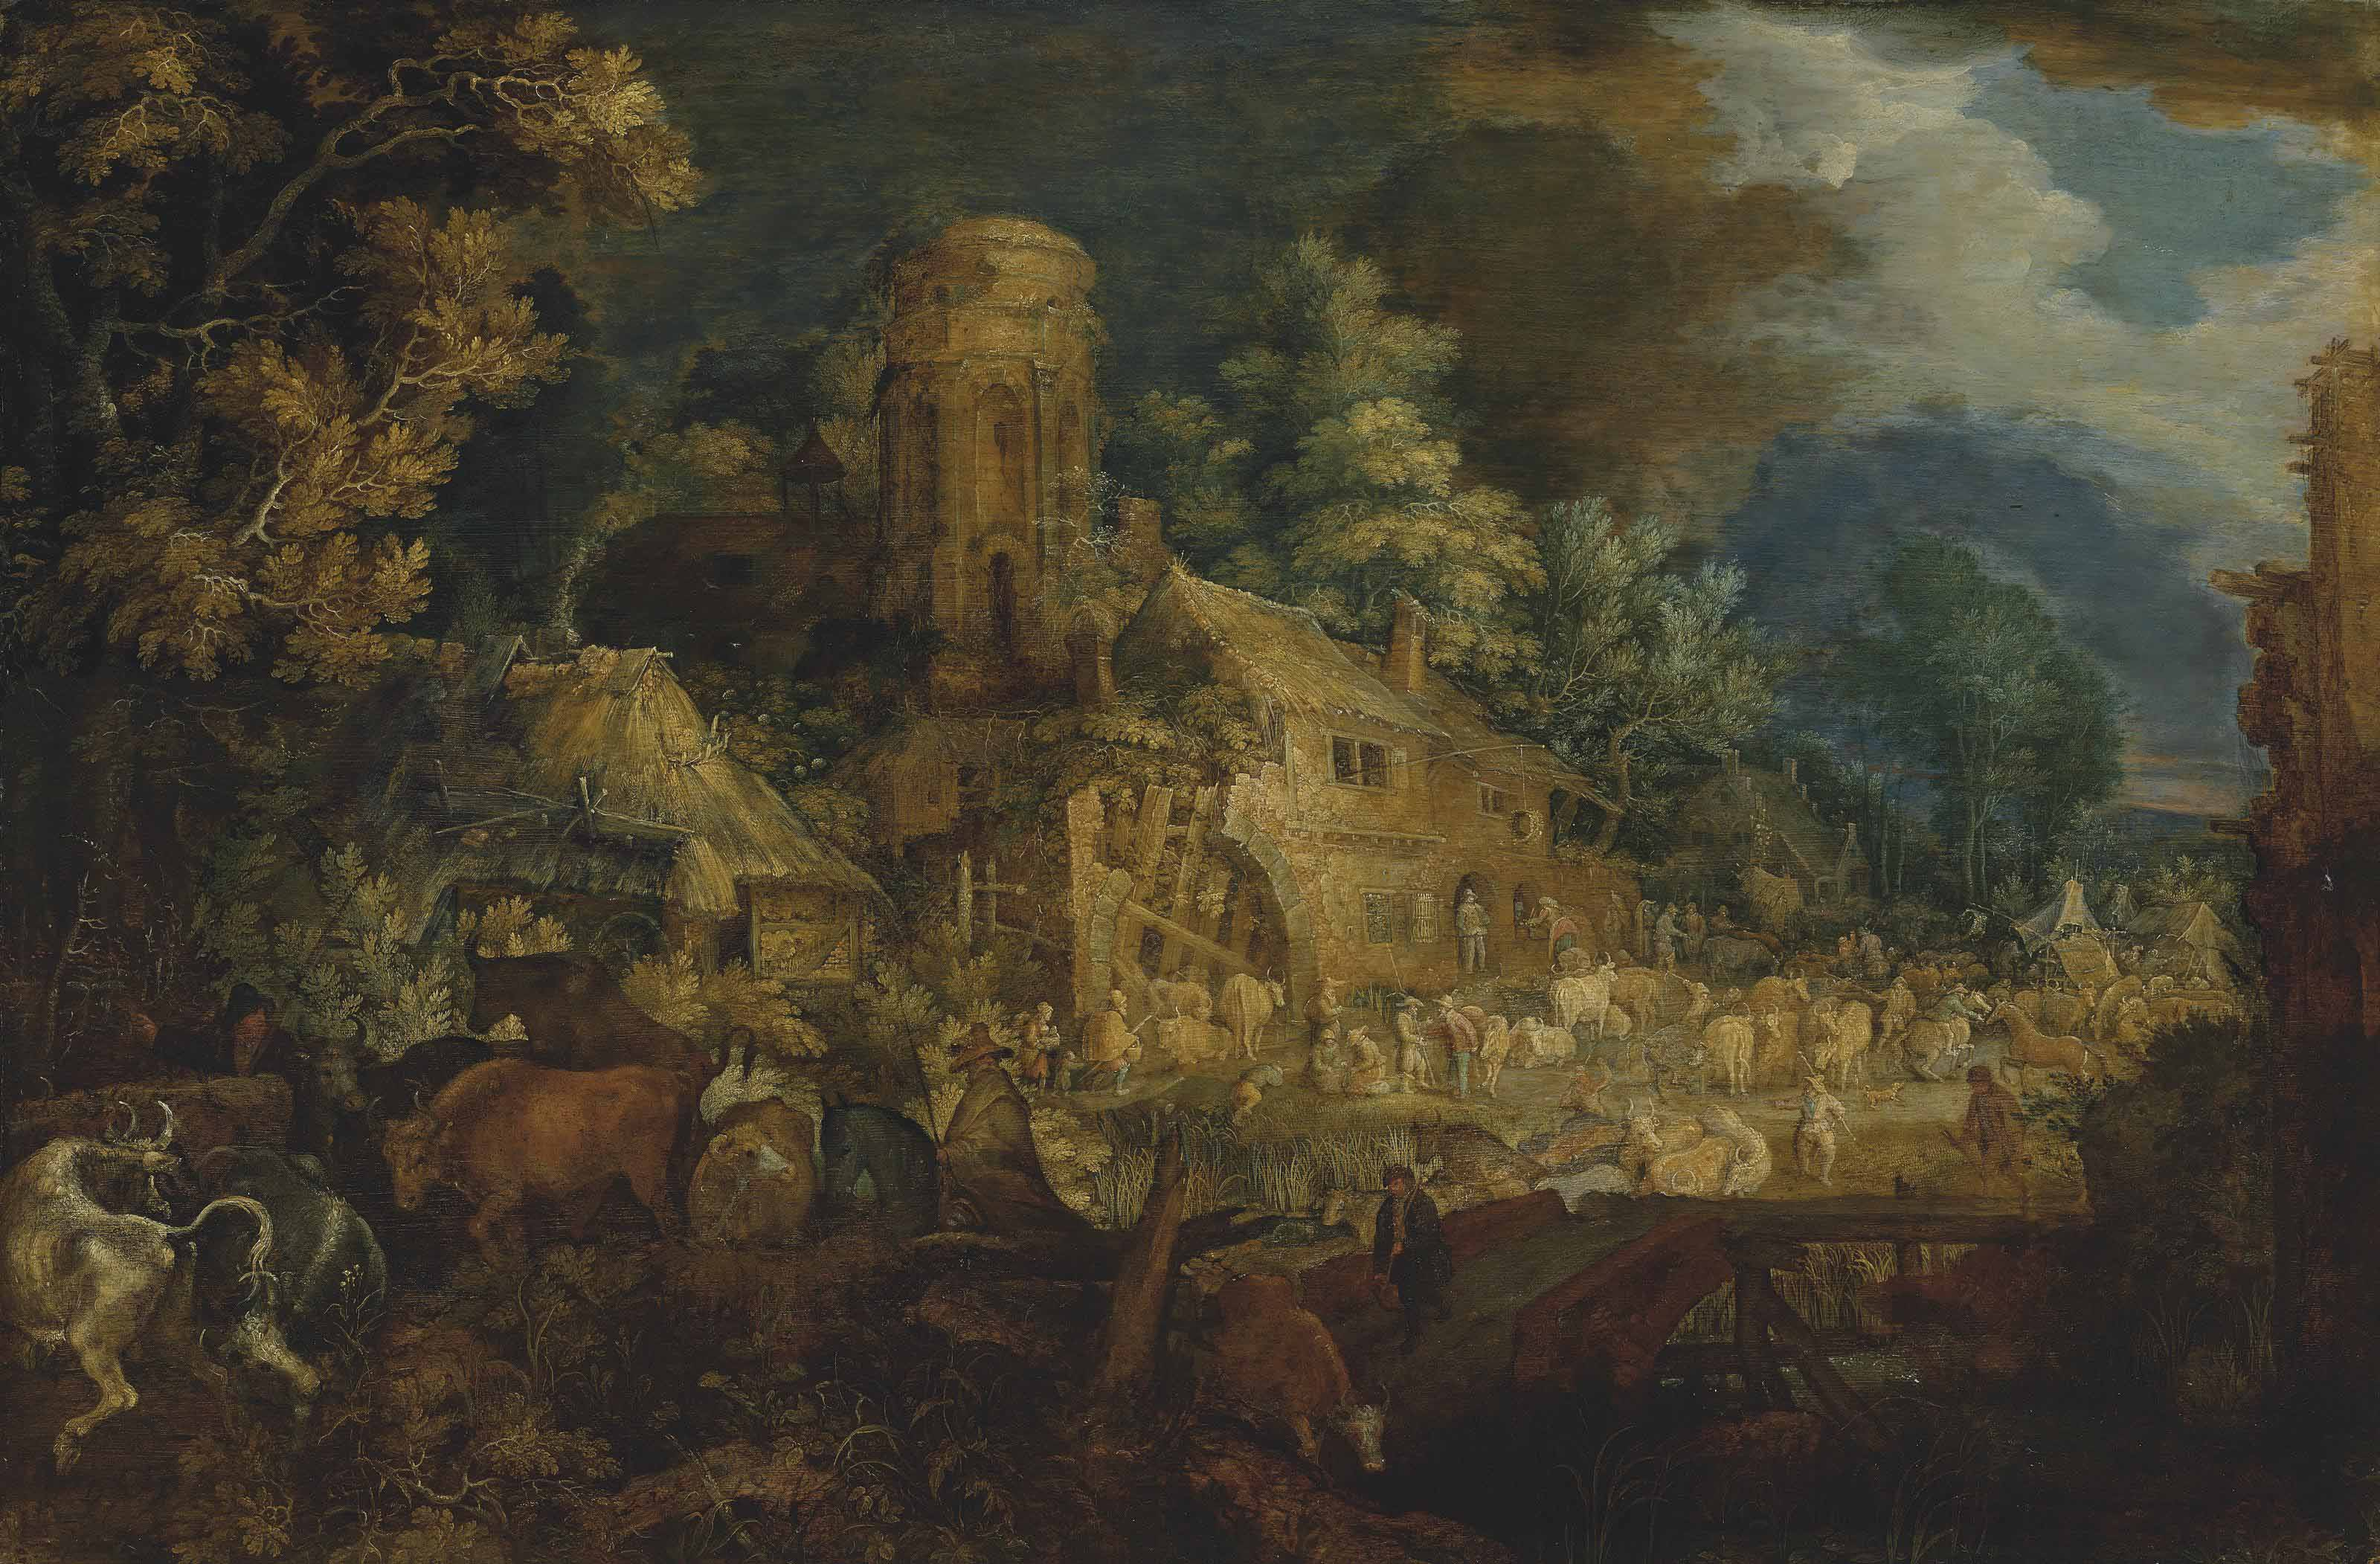 A cattle market near a ruined farmstead in a village by a river